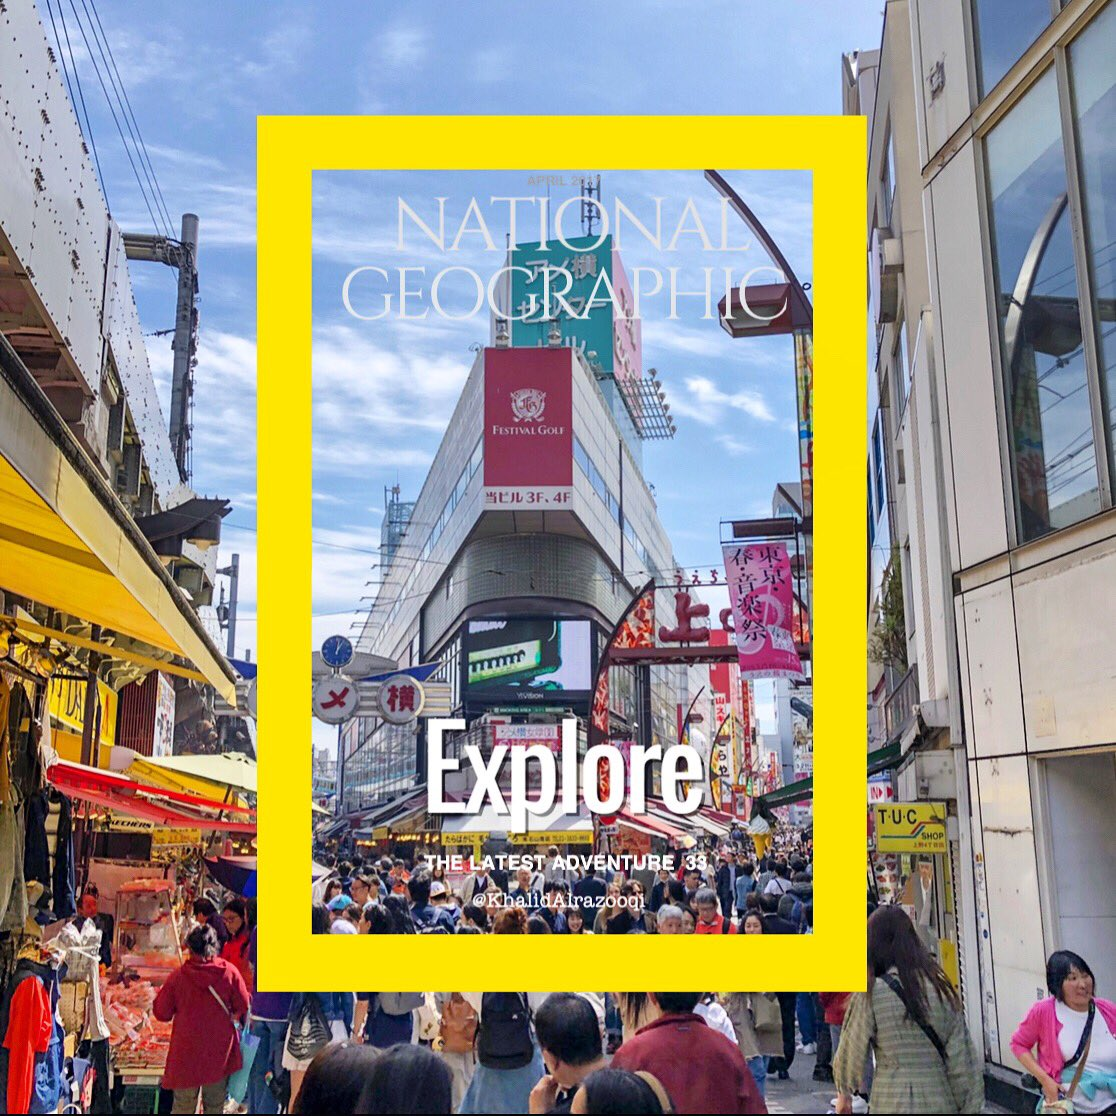 The #world is a National Geographic channel  #traveljp #japan #tokyo #travel #explore #discover #nationalgeographic<br>http://pic.twitter.com/SCCts6psJf